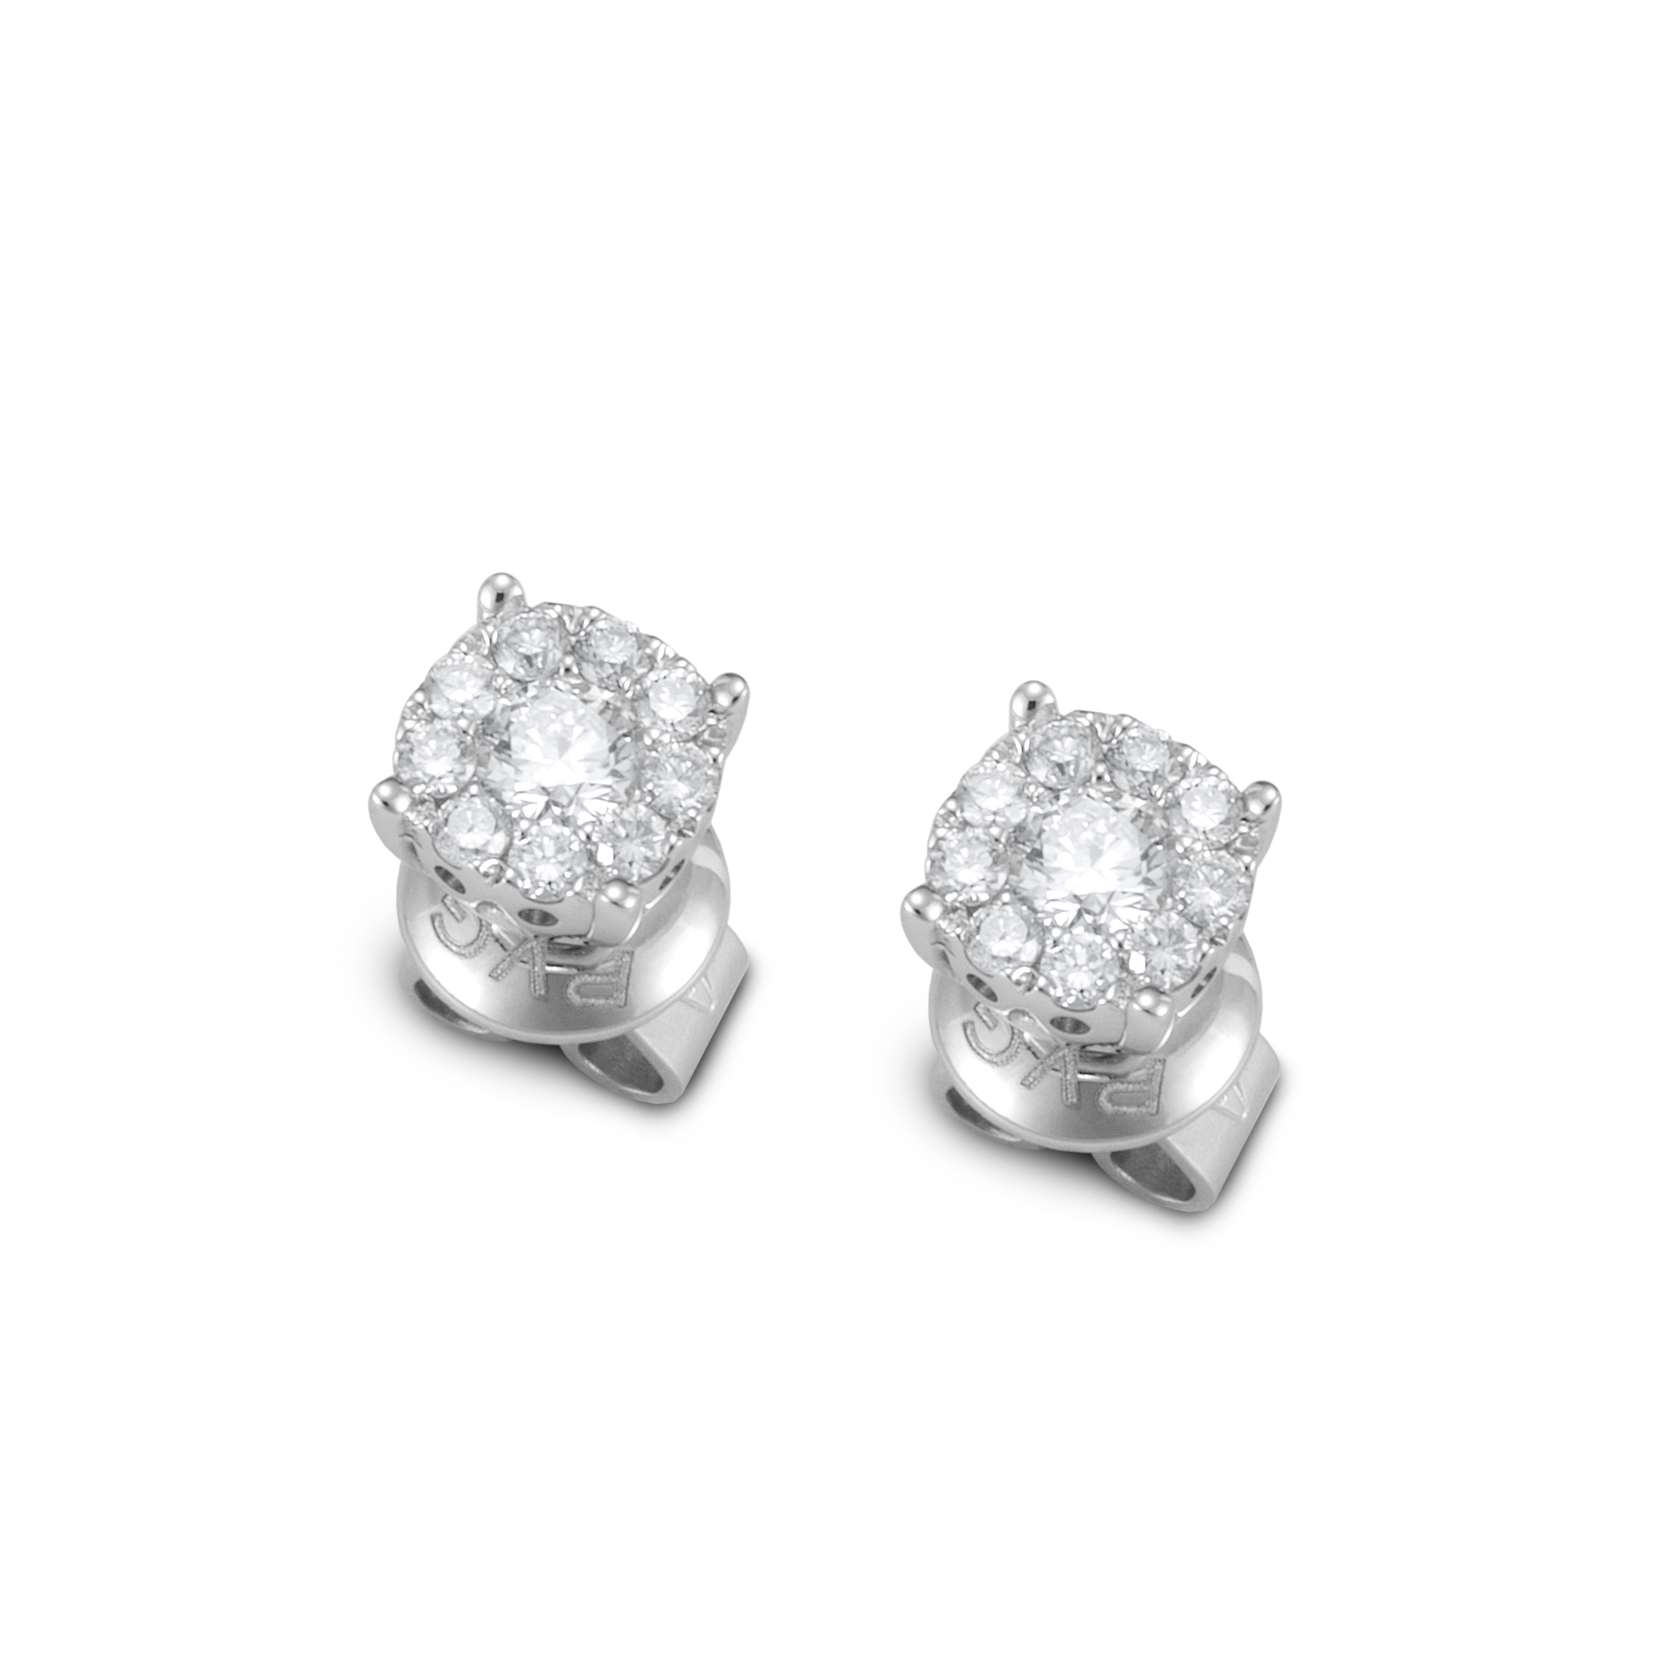 Ponte Vecchio Earrings white gold and diamonds ct 0,40 Ref.CO840-25W